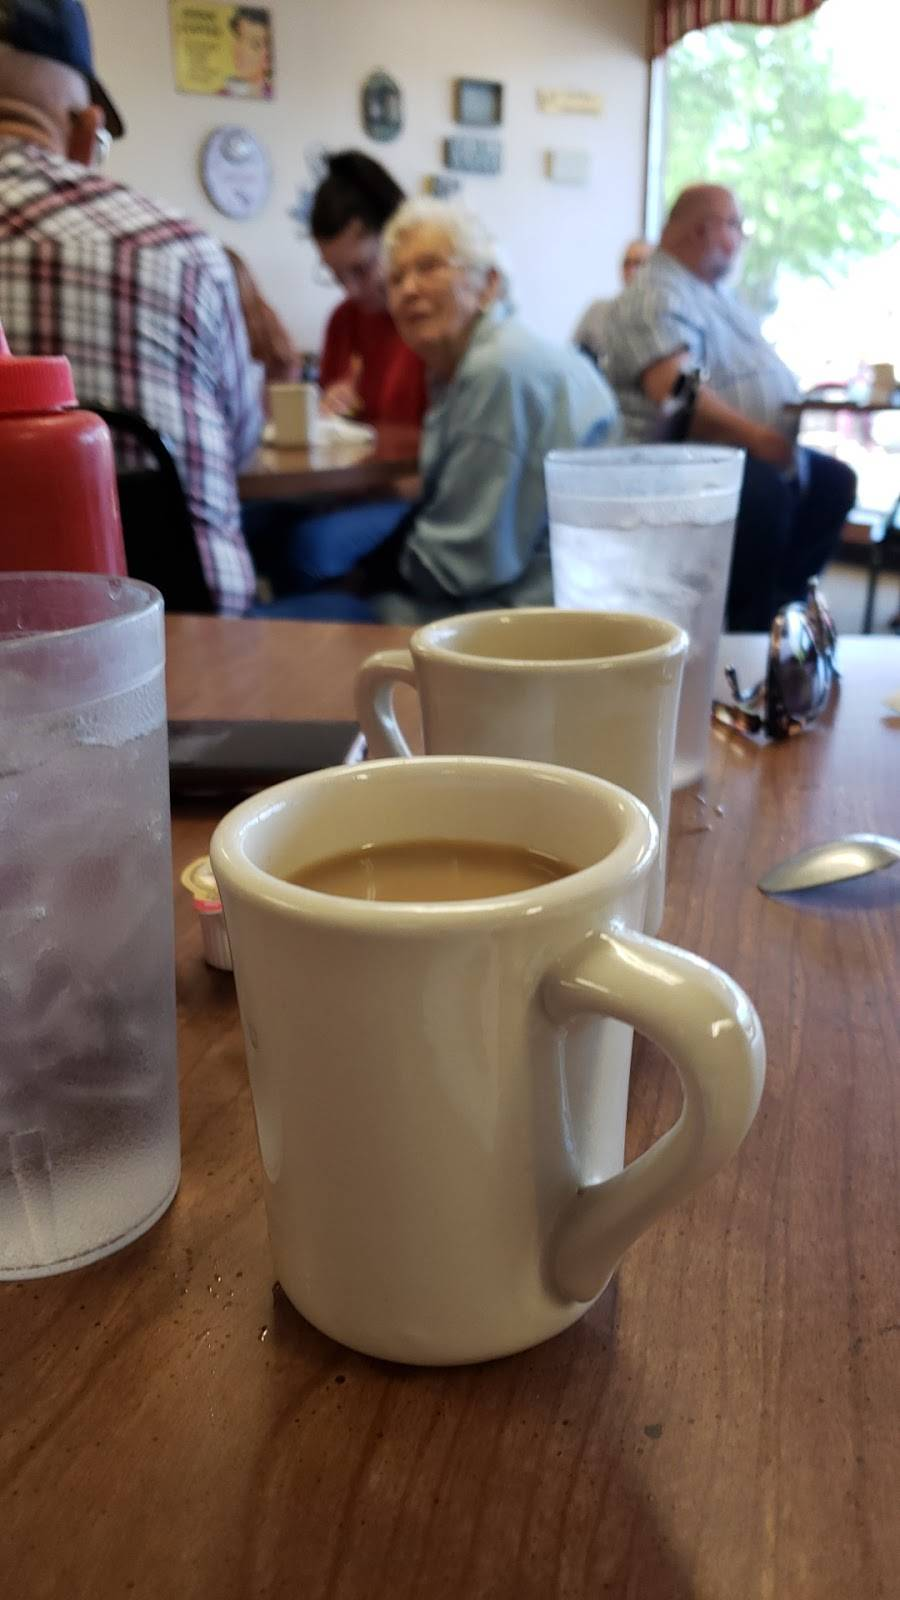 Cooks Cafe - cafe  | Photo 9 of 9 | Address: 1300 N 66th St, Lincoln, NE 68505, USA | Phone: (402) 466-1771